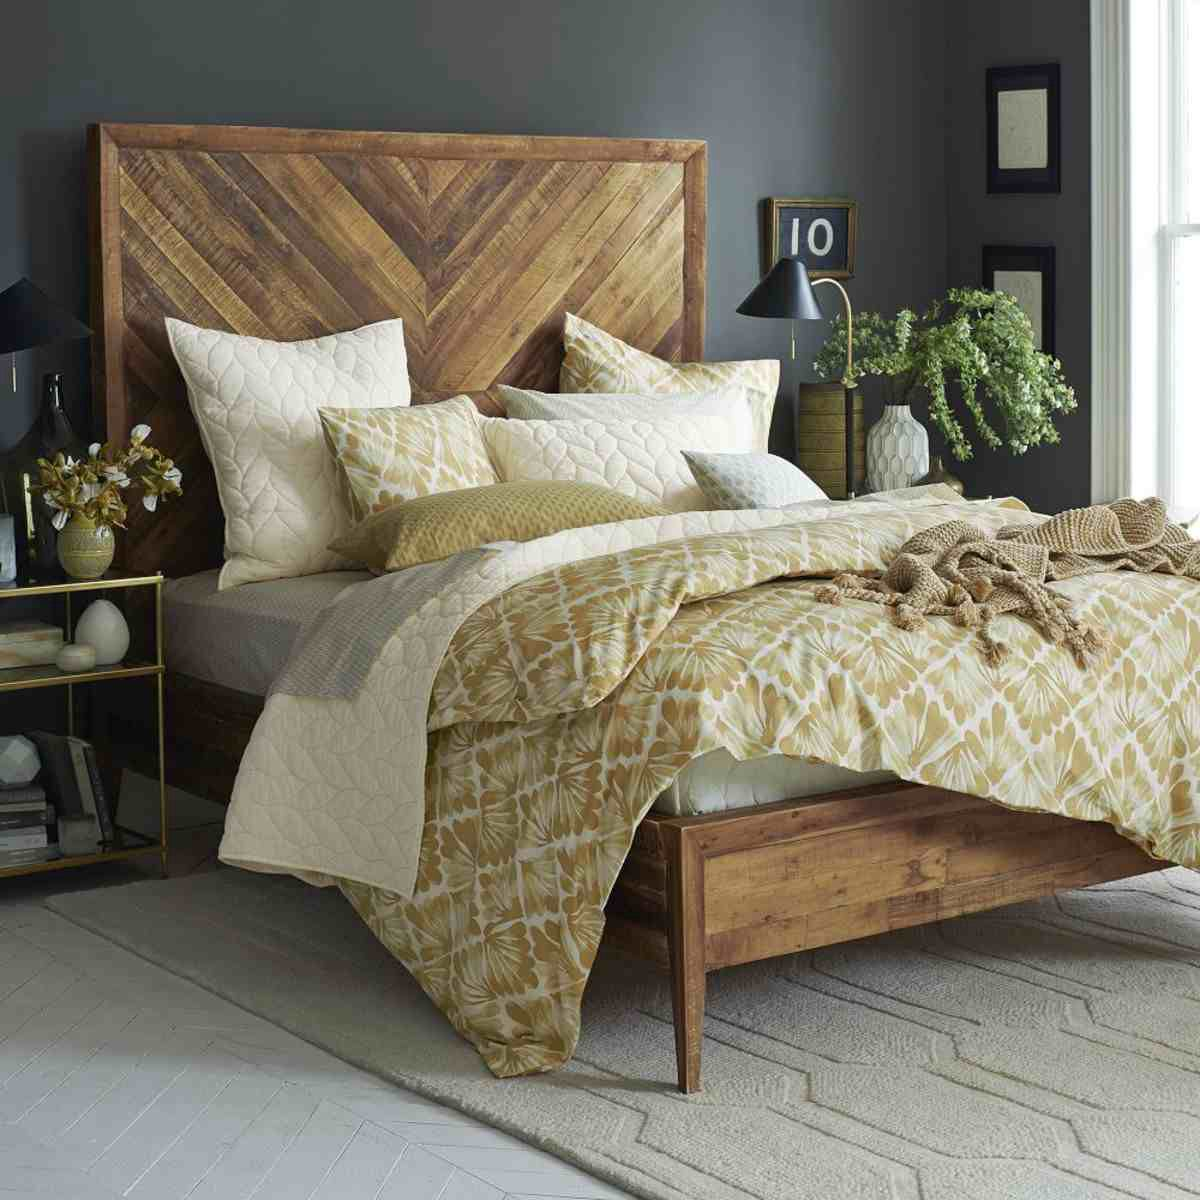 Simple Decorating Ideas To Make Your Room Look Amazing: Amazing Bed With Large Chevron Wooden Headboard